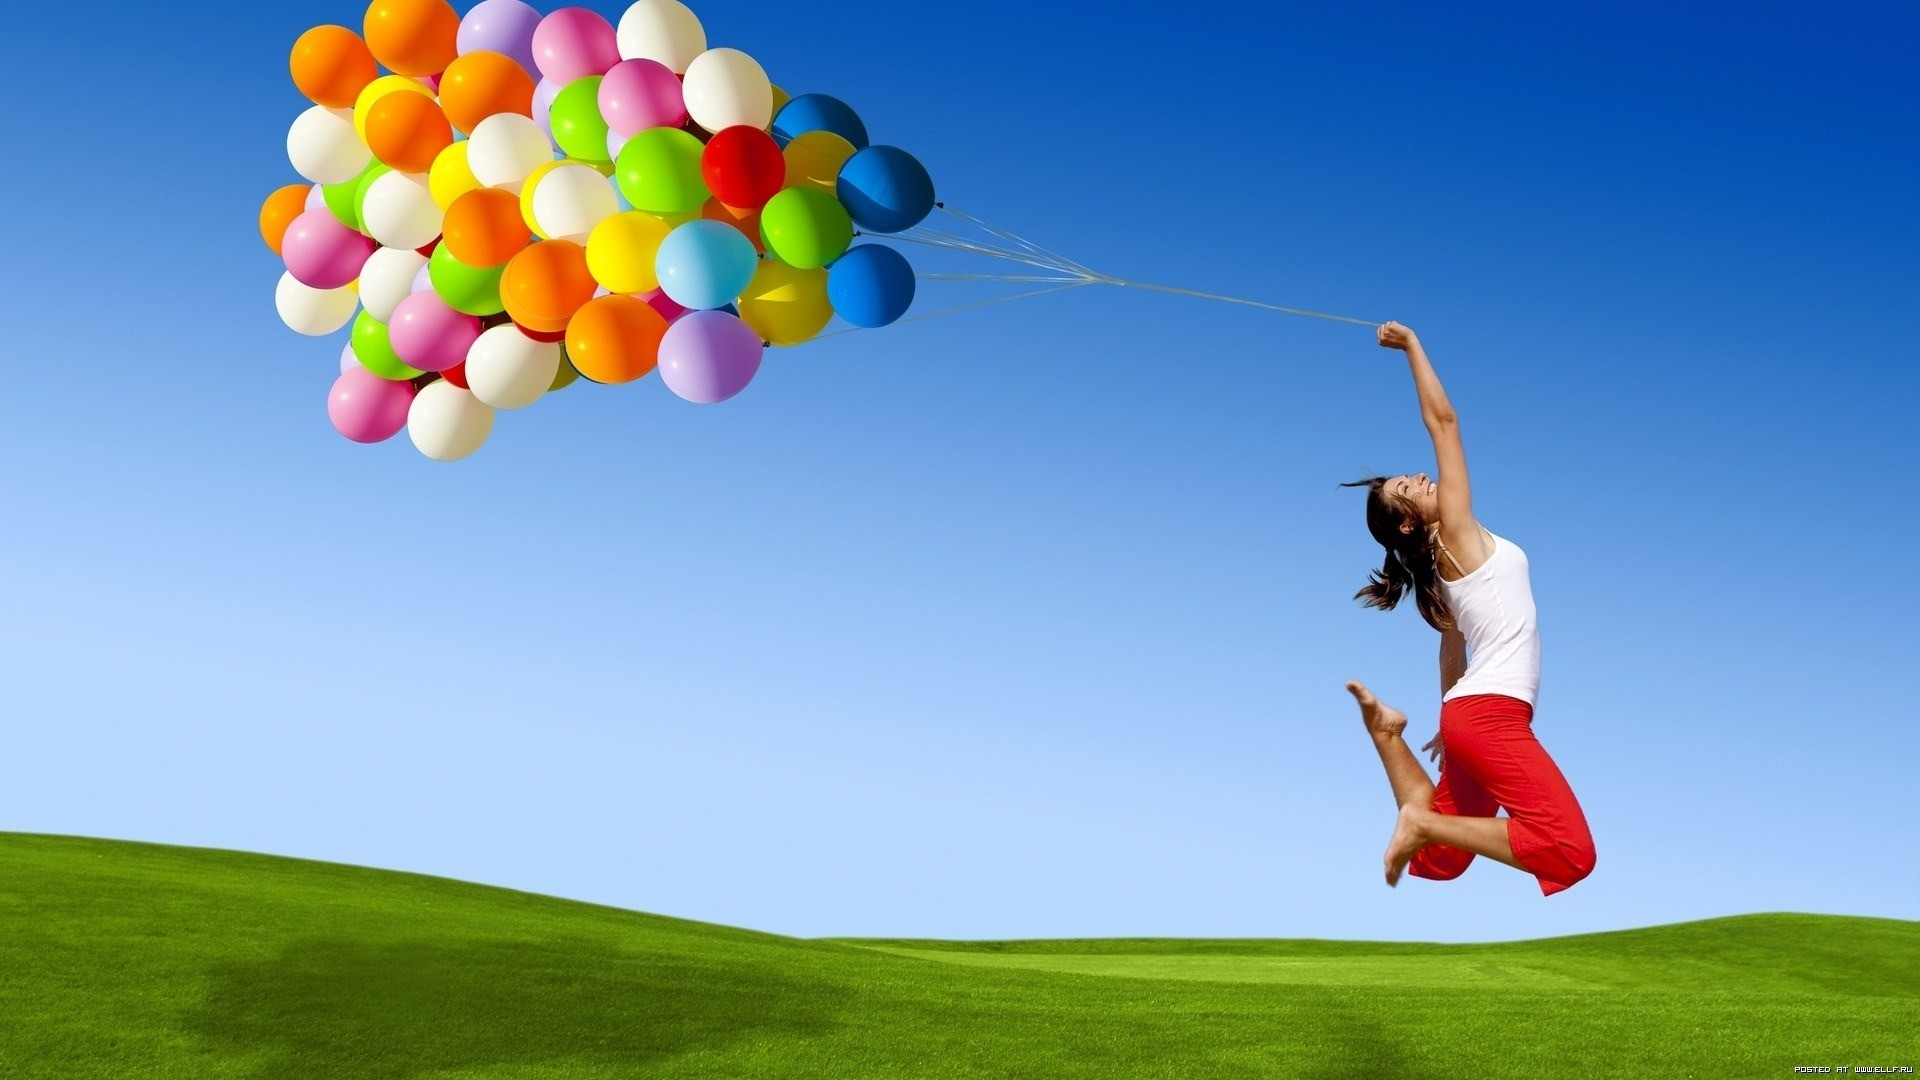 woman jumping Balloons arms HD Wallpaper